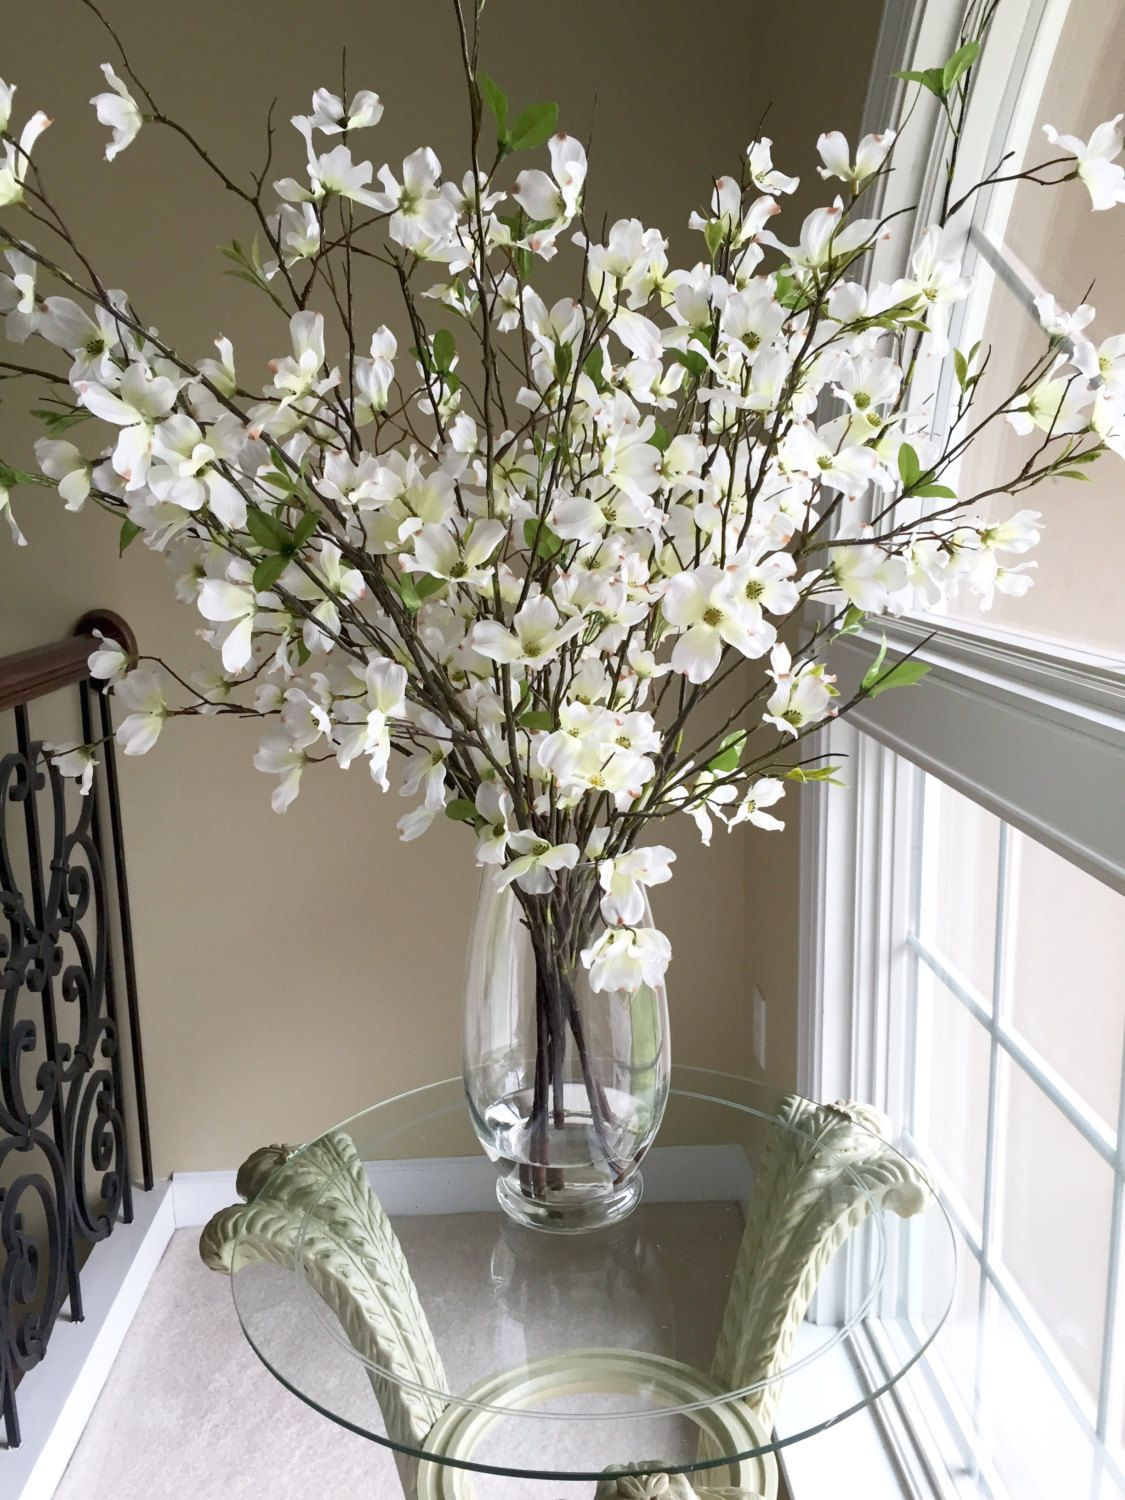 Beautiful dogwood branches in large glass vase by beautiful dogwood branches in large glass vase by theenchantedorchid on etsy reviewsmspy